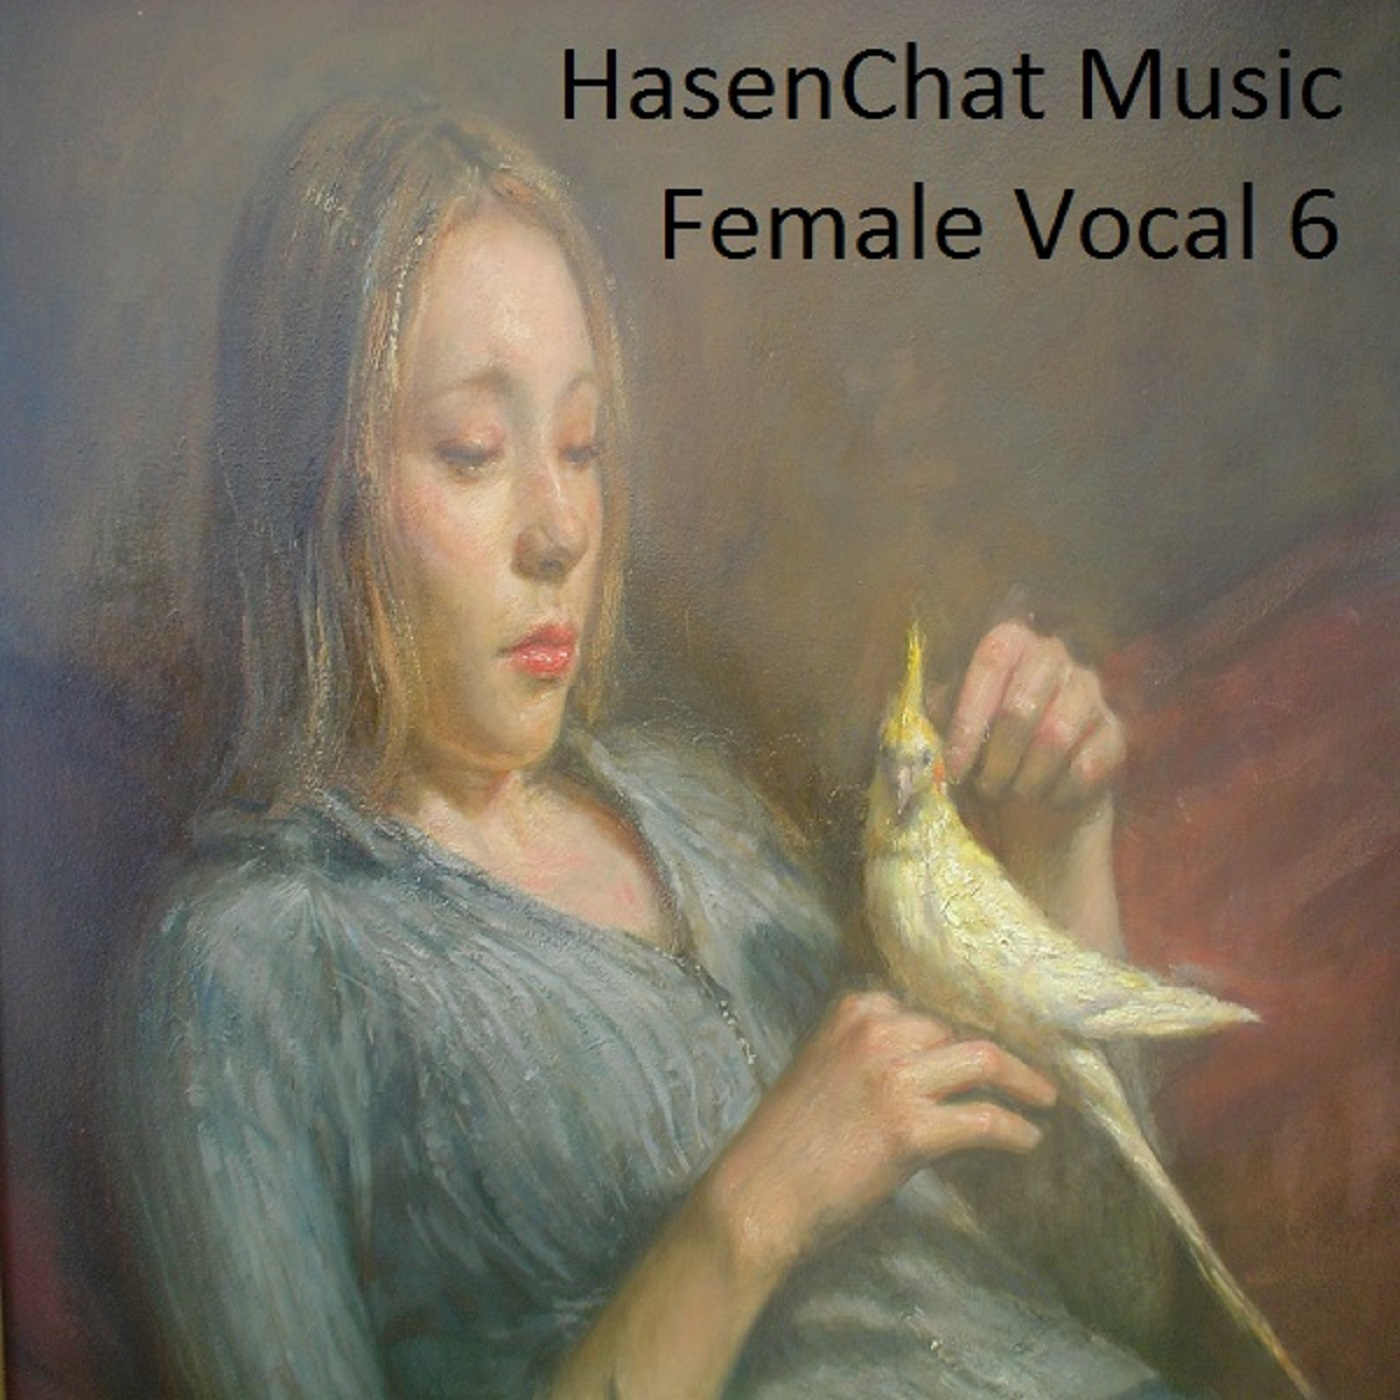 HasenChat Music - Female Vocal - Episode 6